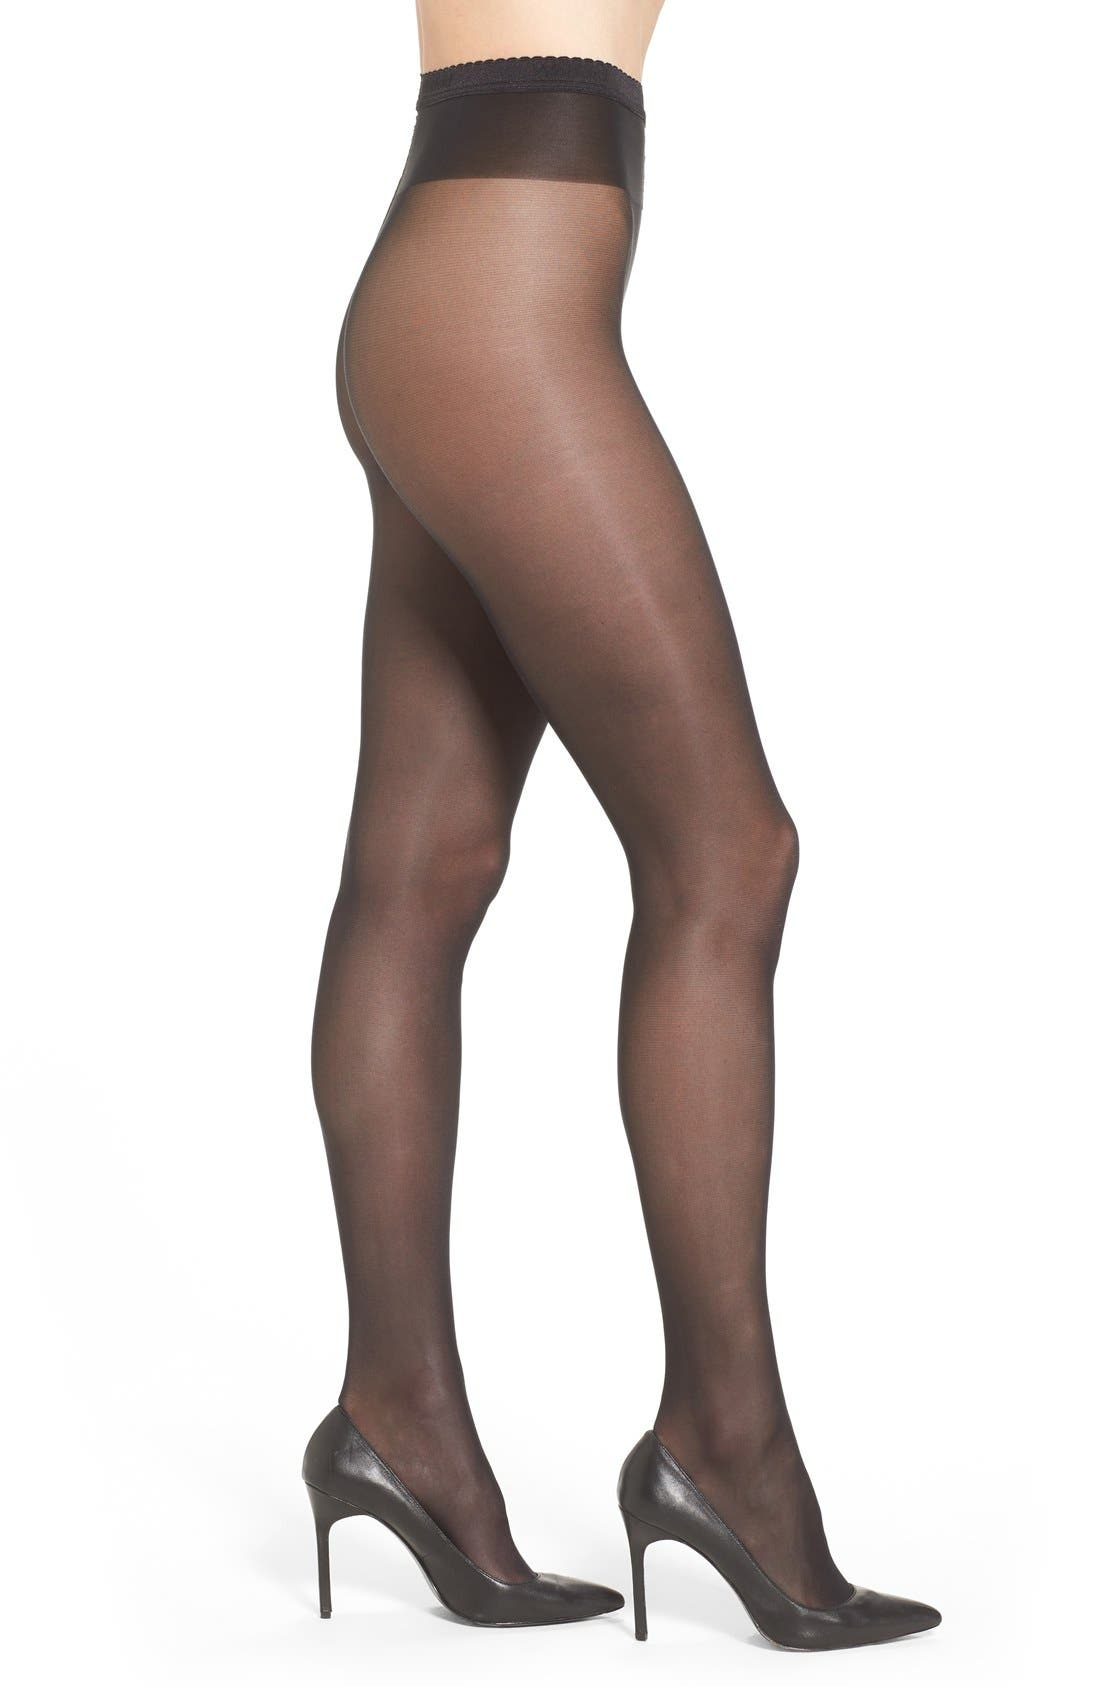 'Neon 40' Pantyhose,                             Main thumbnail 1, color,                             BLACK